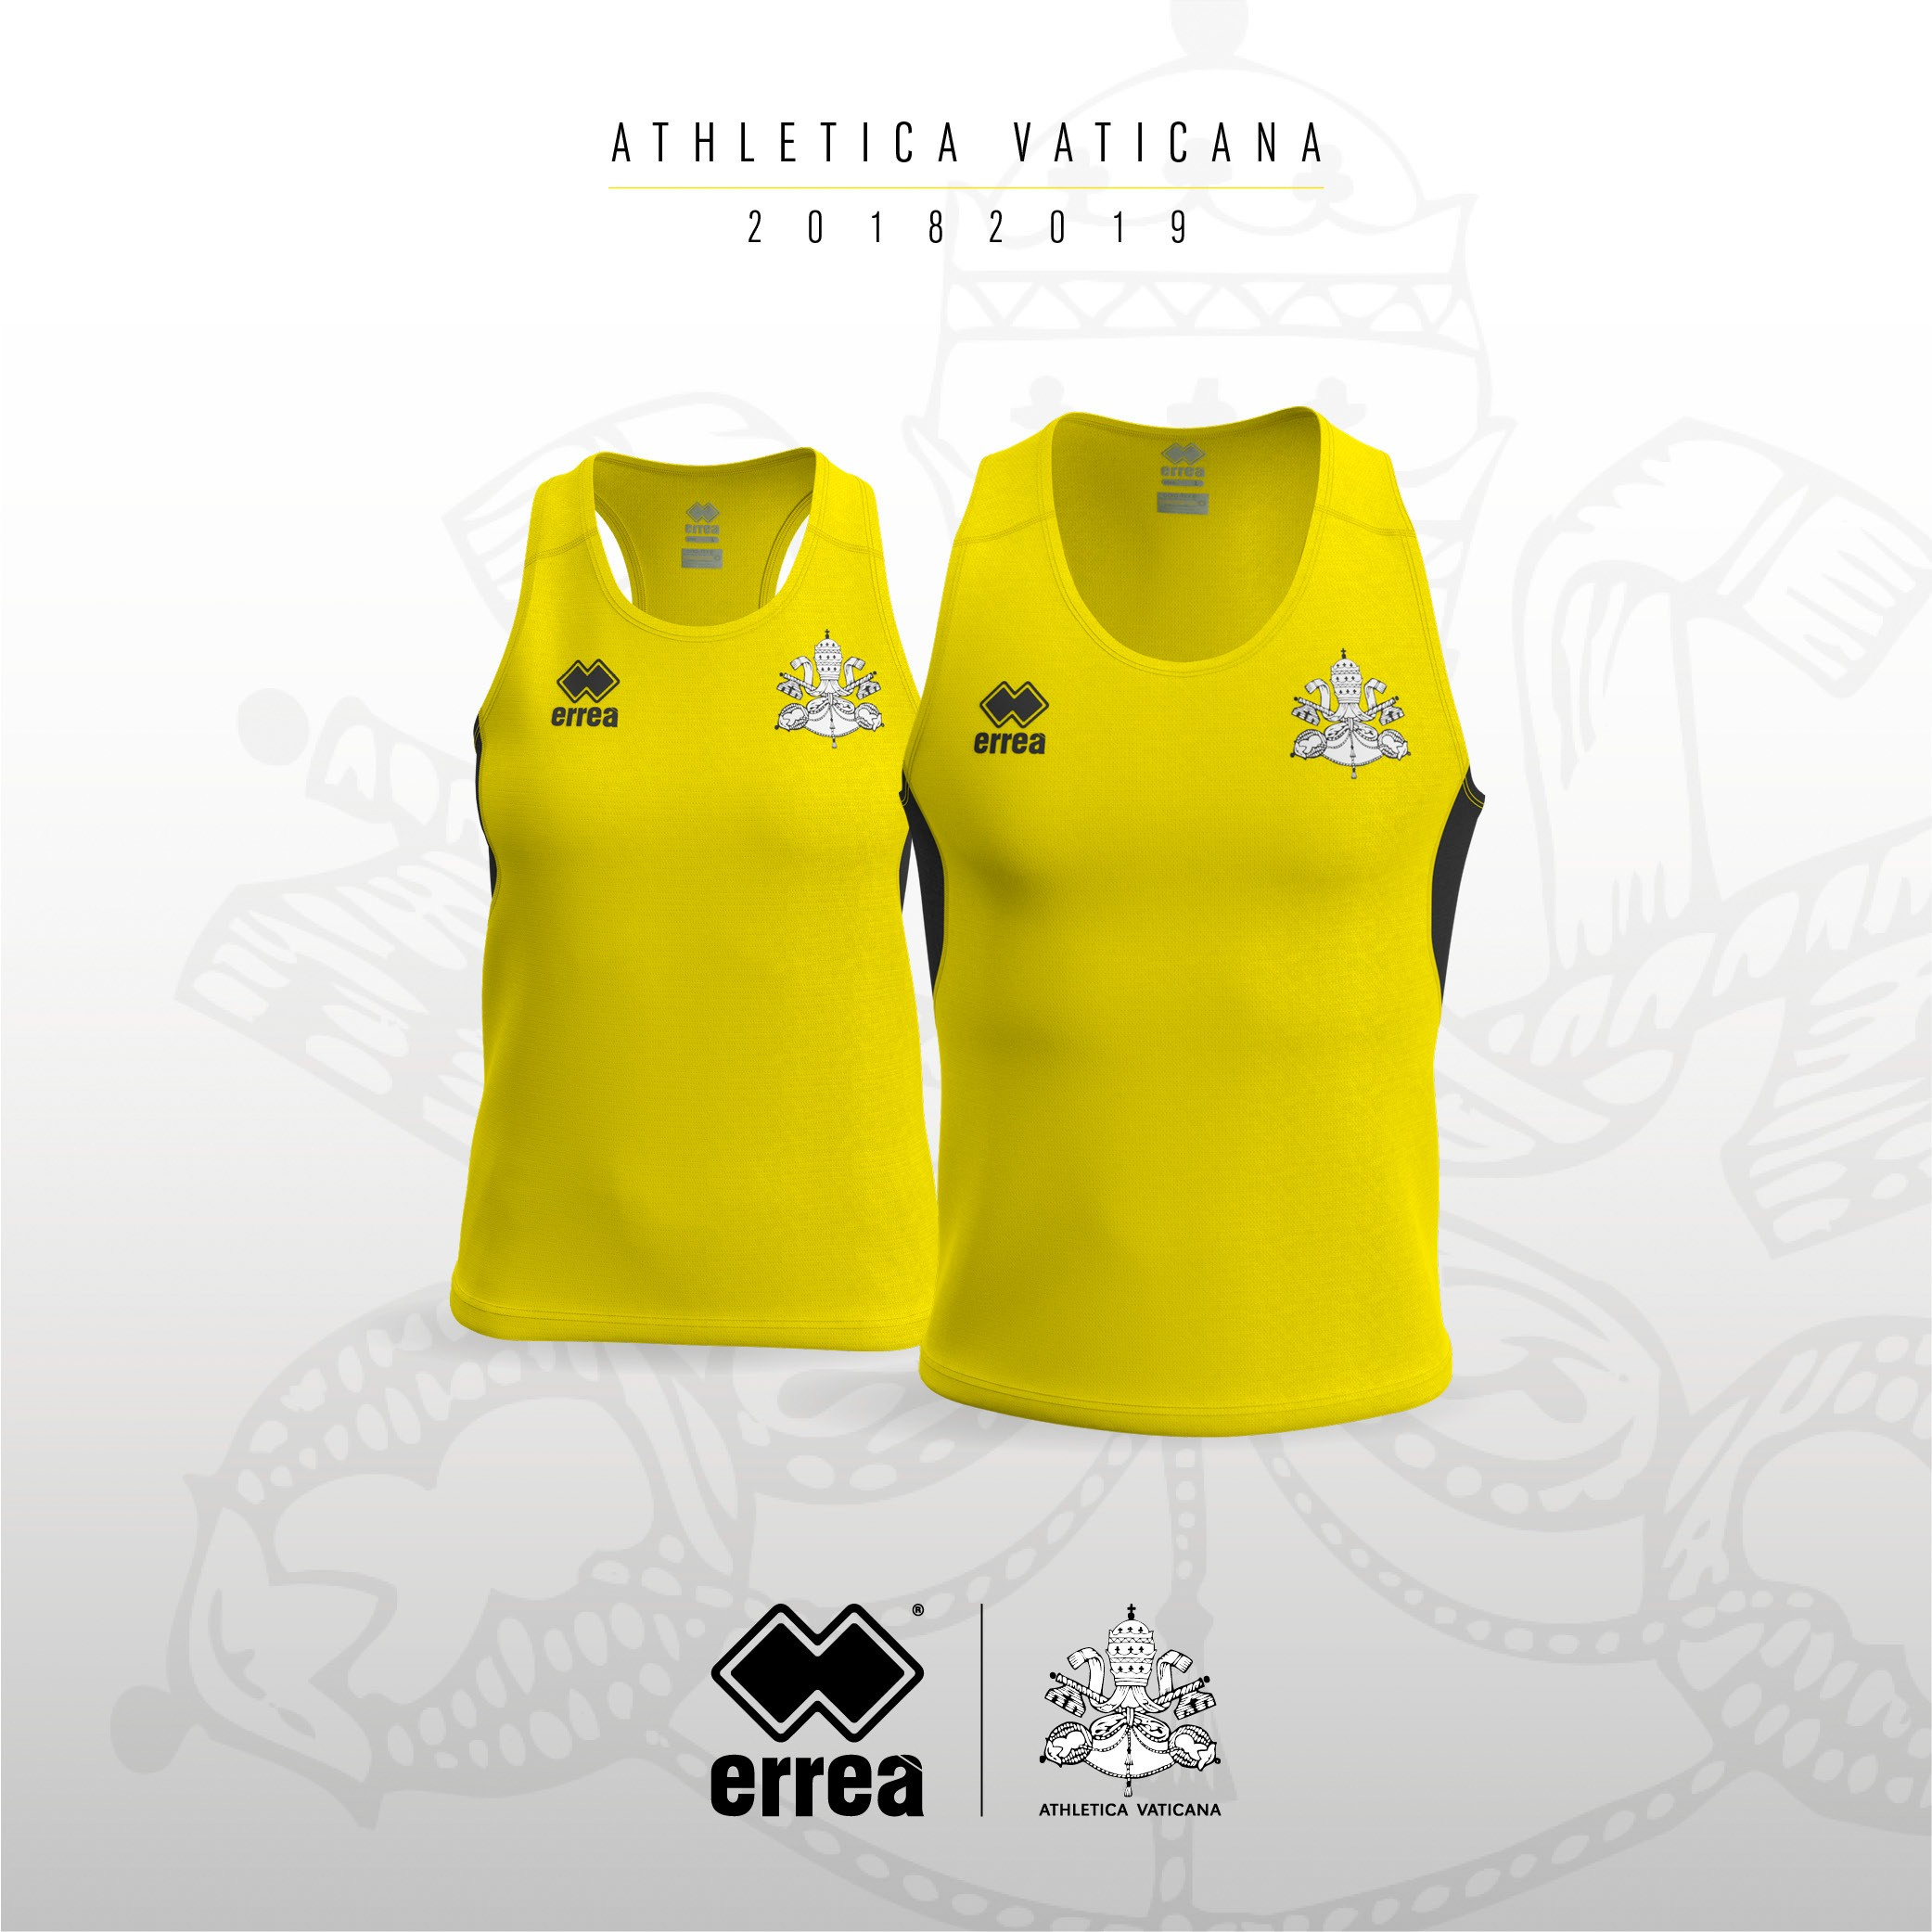 Athletica Vaticana with Erreà Sport for a sport that's both ethical and clean